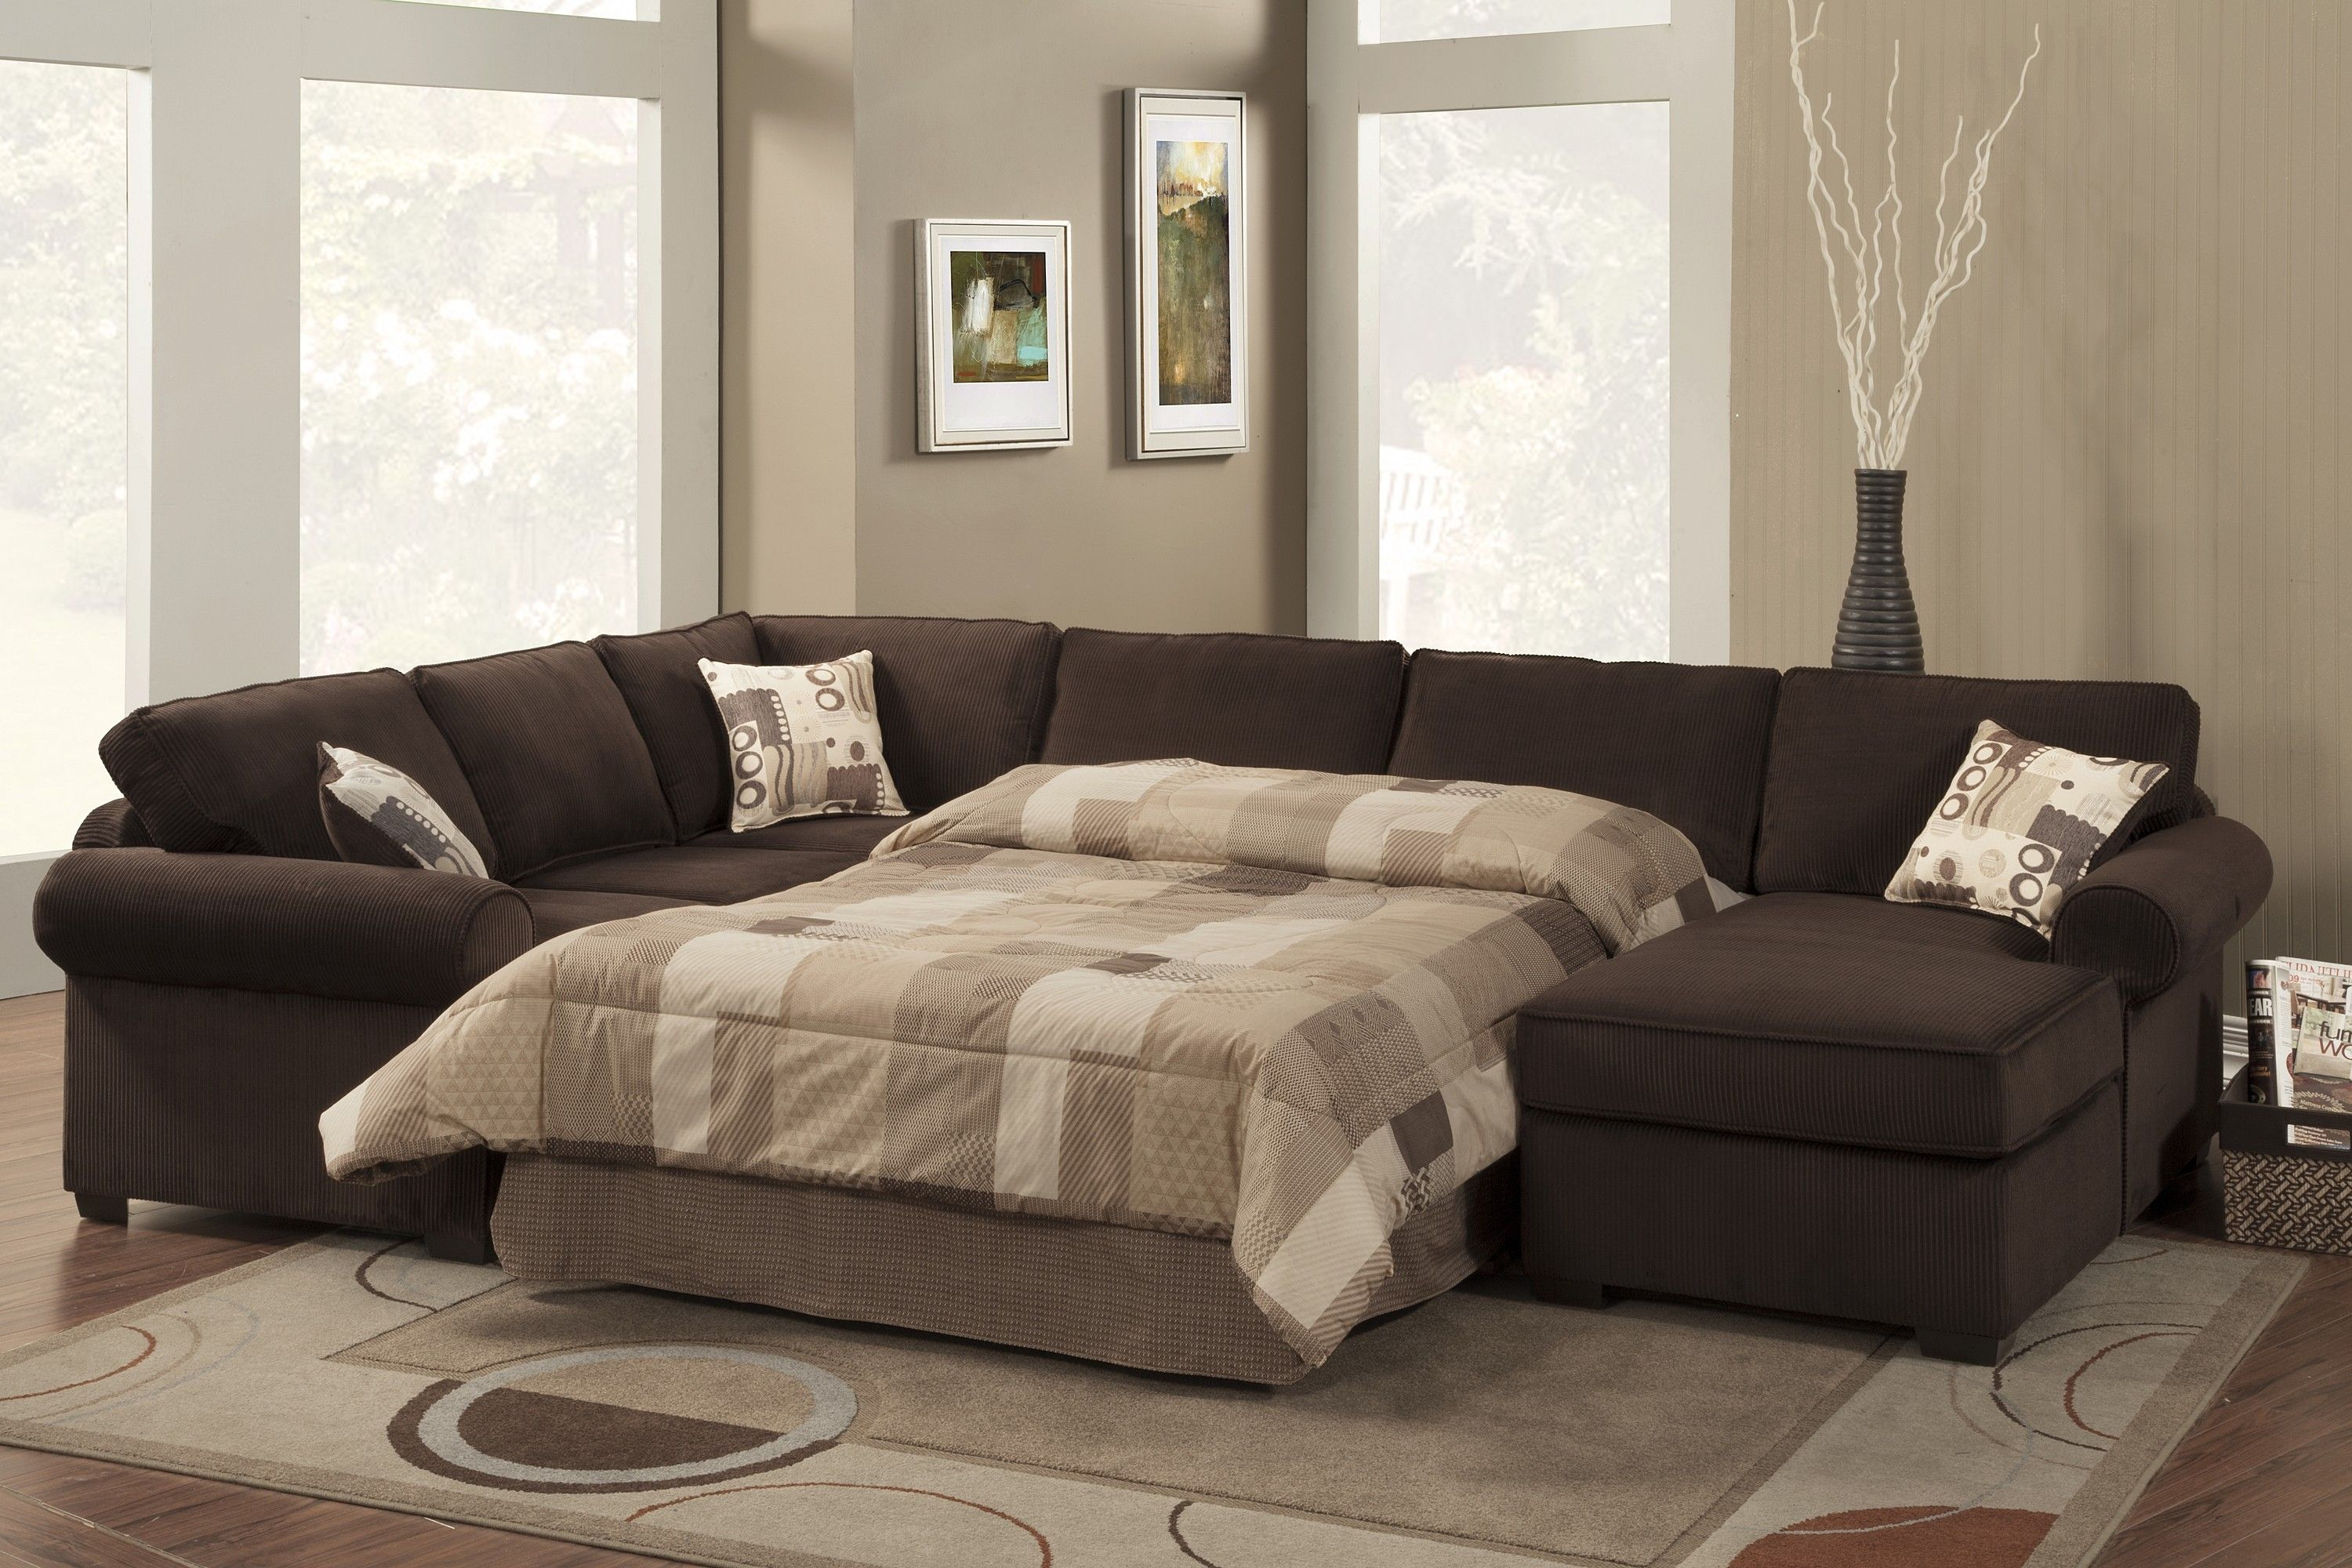 Stanton 3 piece living room set brown - Room 3 Piece Sectional Sofa